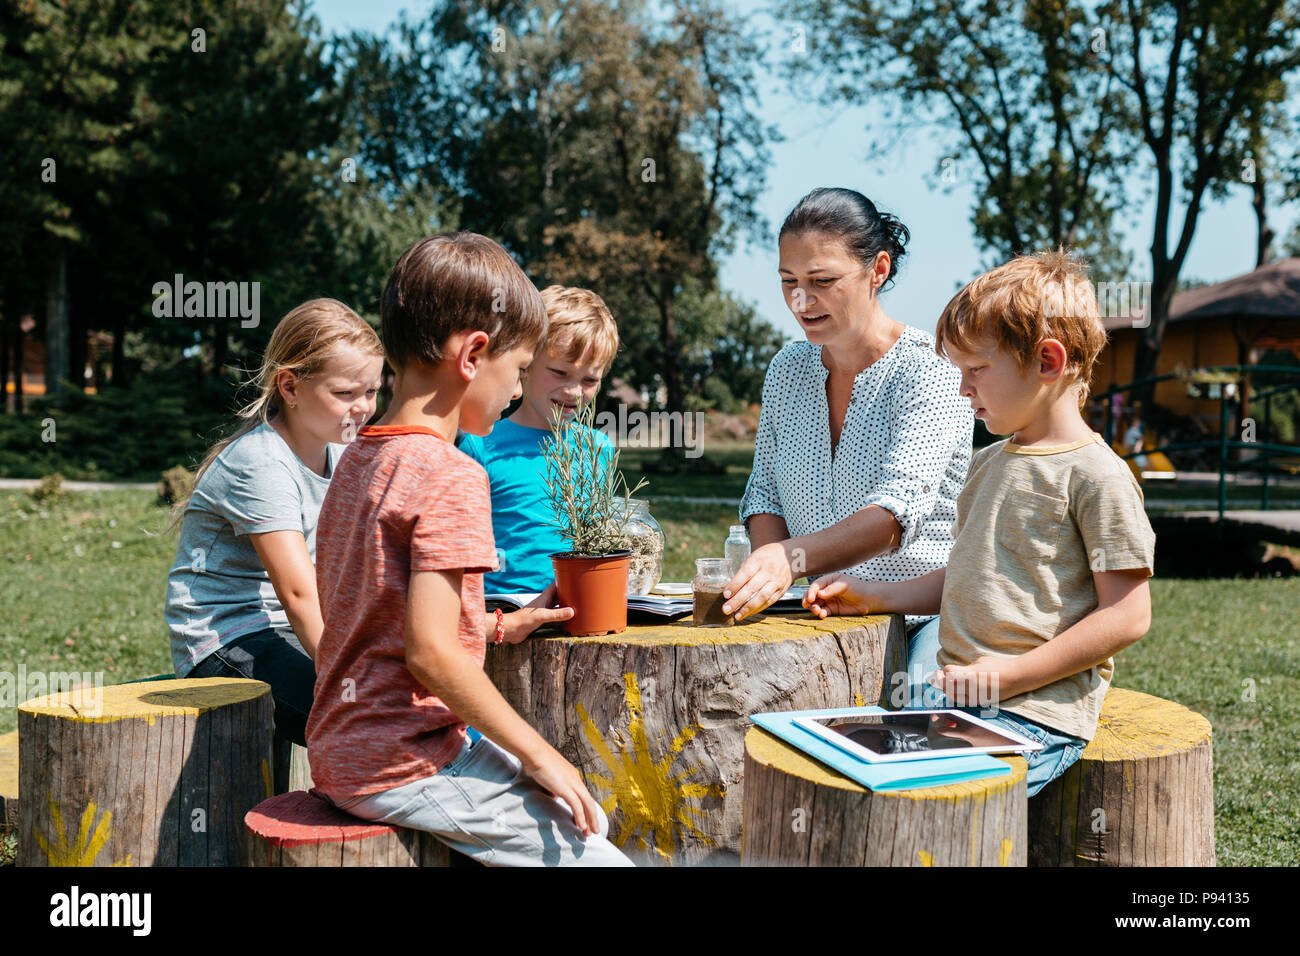 Group of schoolchildren having a lesson outside in a park. Children sitting around a wooden table and learning together with a teacher in the garden. - Stock Image